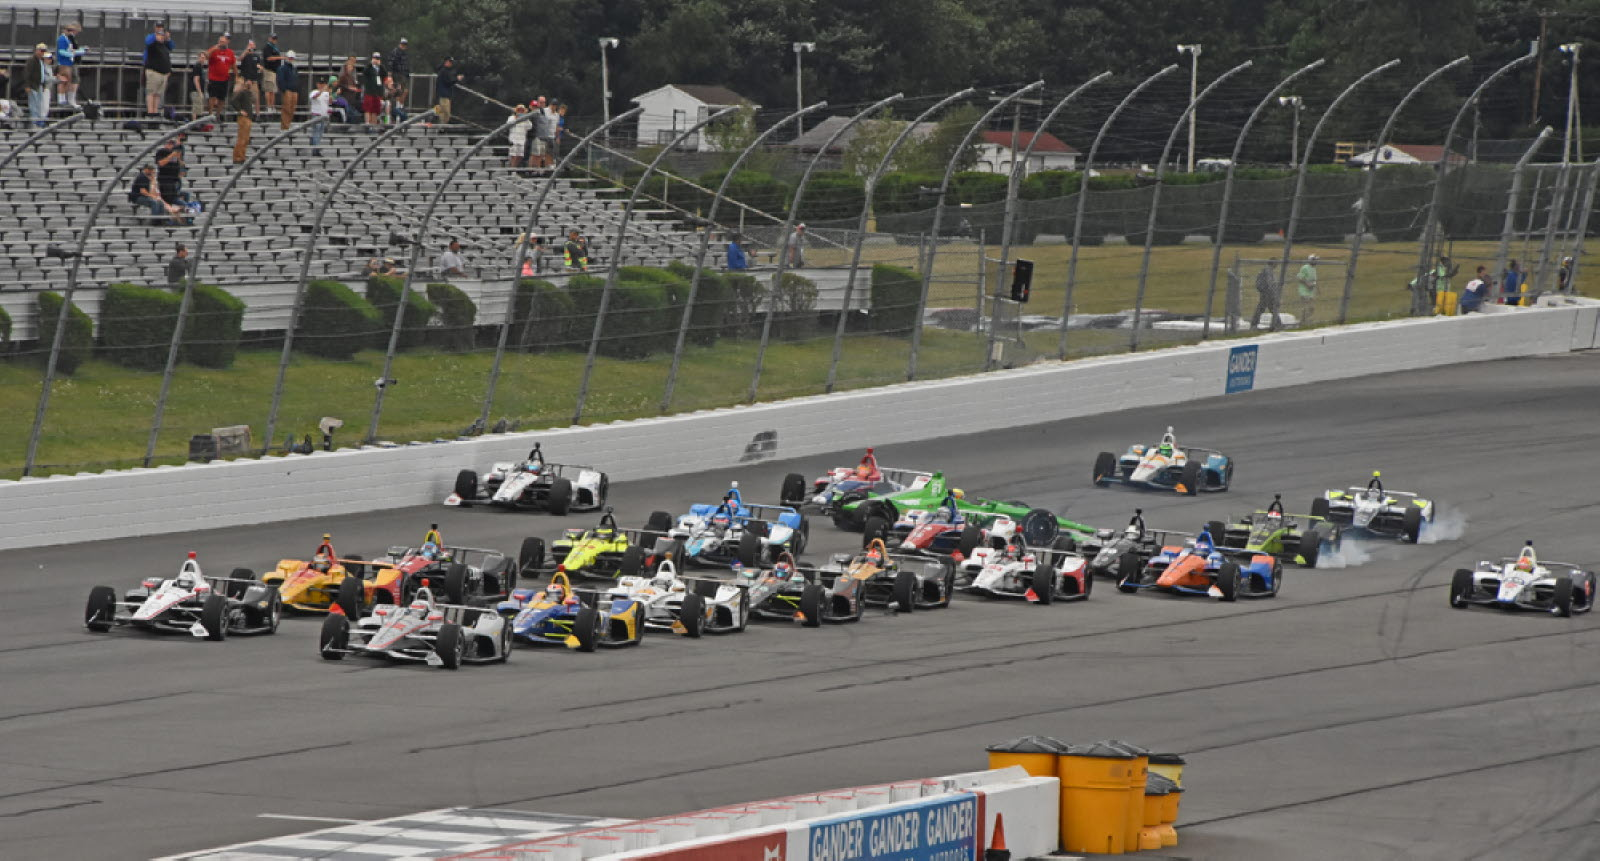 As the field races to the starting line, bedlam occurs in the back with Graham Rahal up against the outer wall and Spencer Pigot (green car) spins into the inner wall. [Joe Jennings Photo]